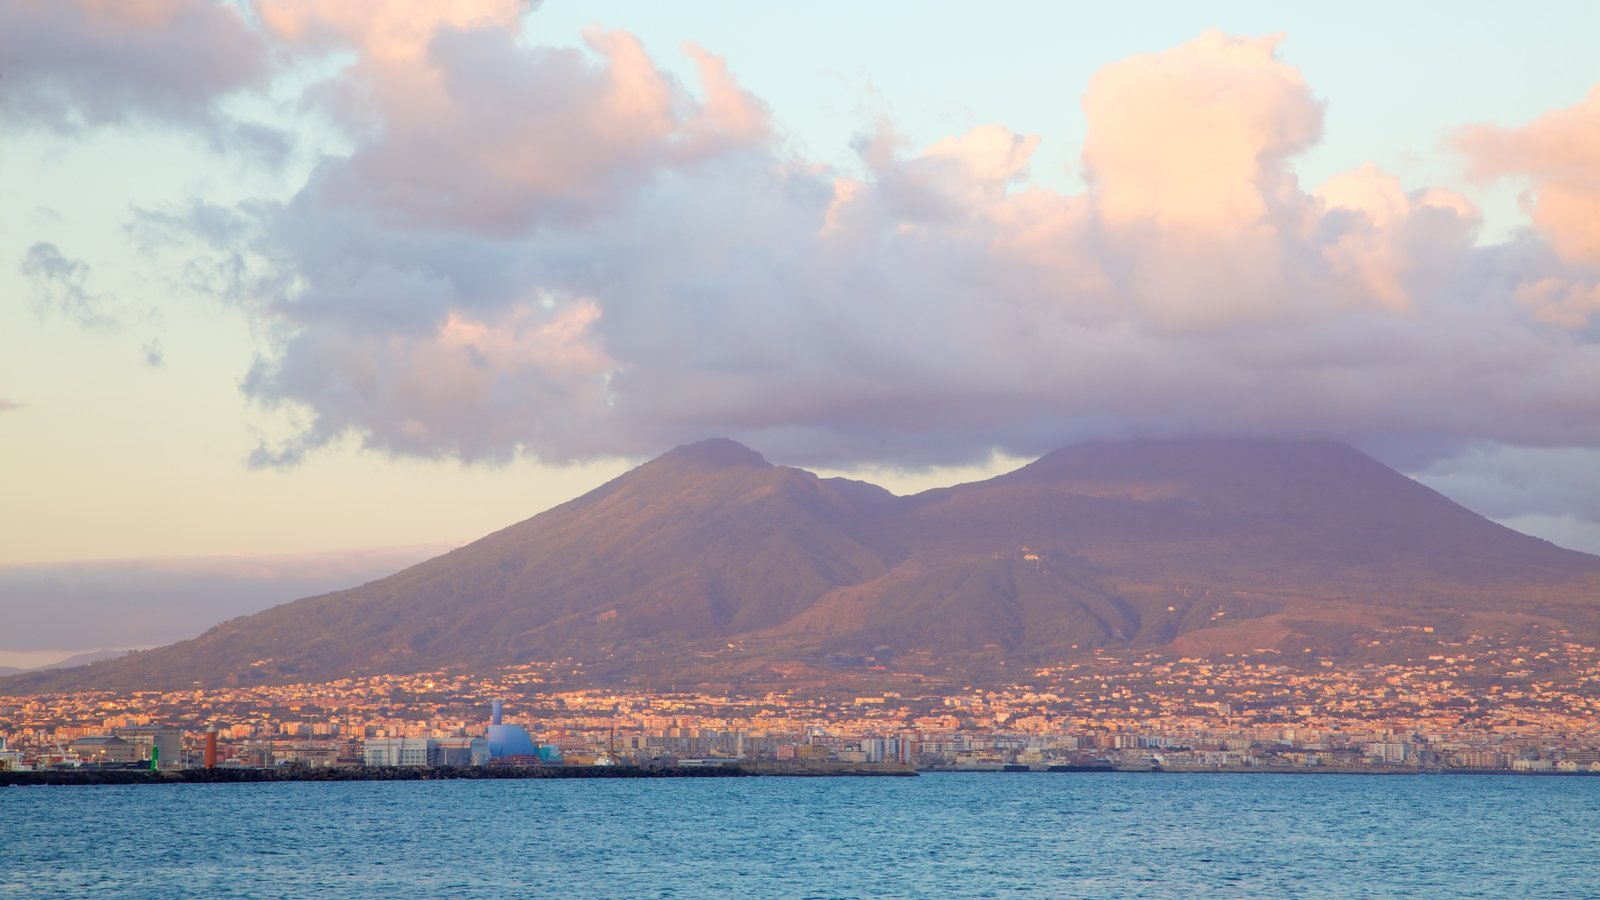 Mount Vesuvius - Pompei which includes mountains, a city and general coastal views